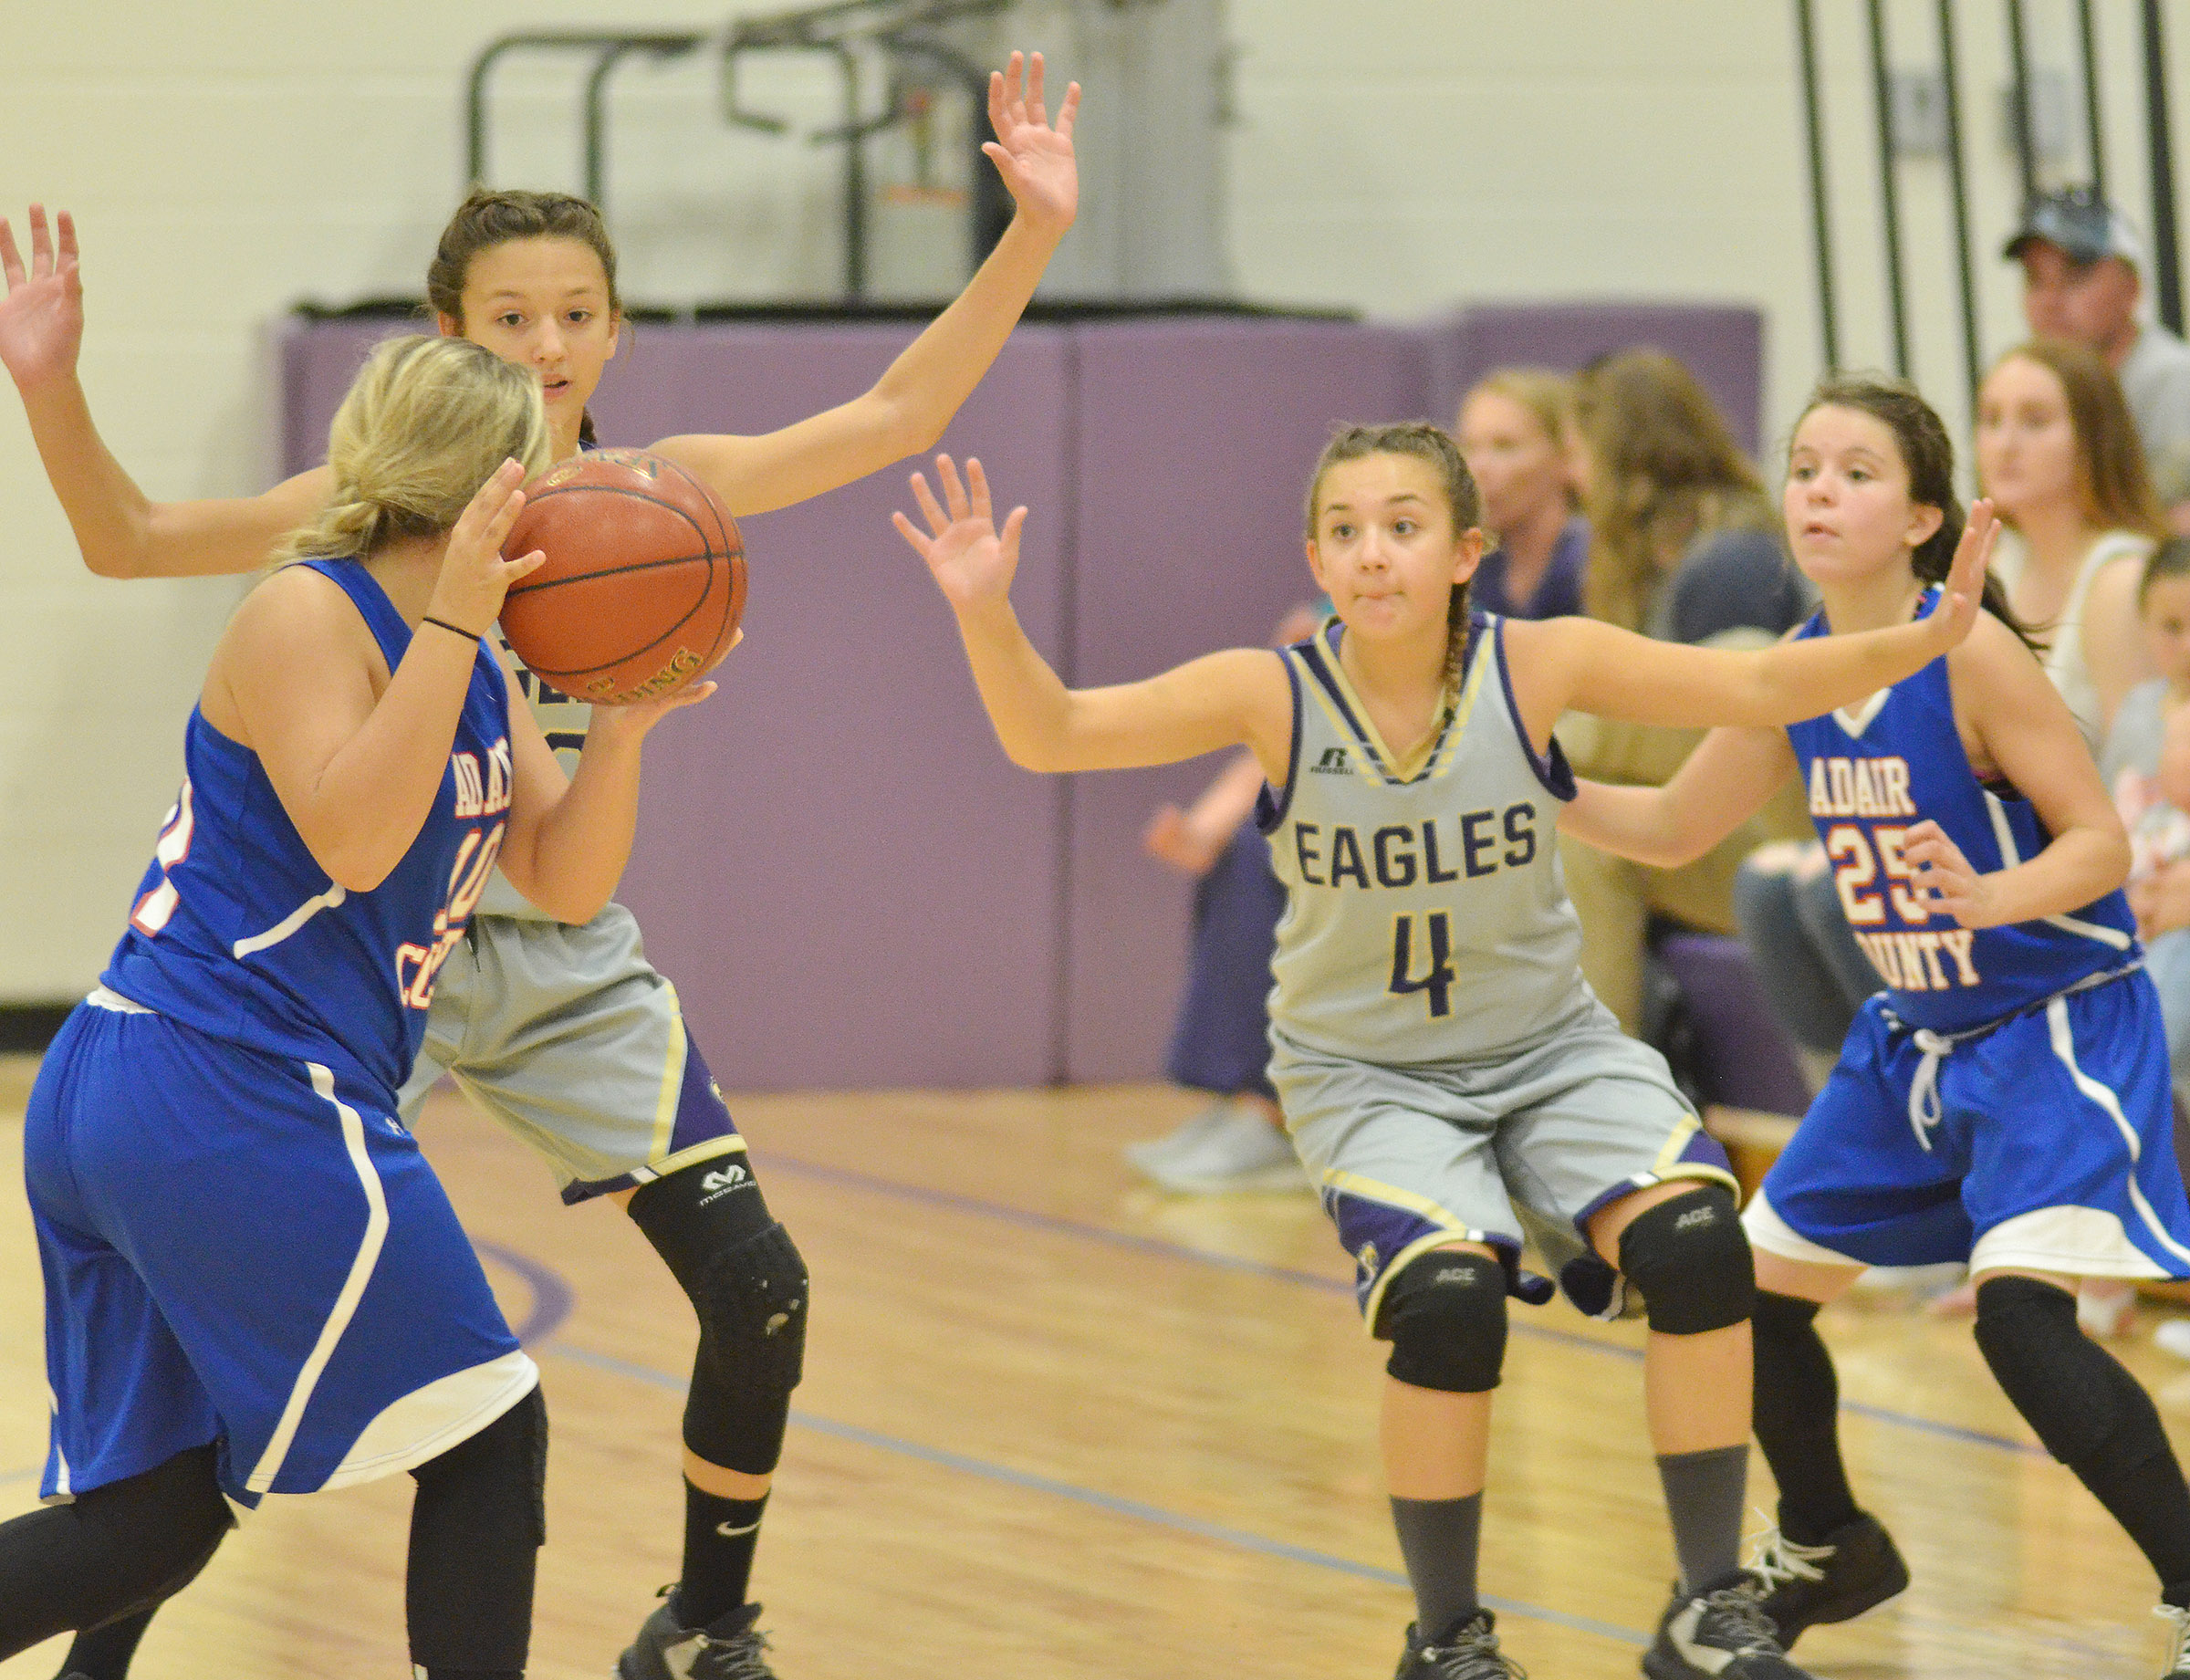 CMS seventh-graders Bri Hayes, at left, and Briana Davis play defense.